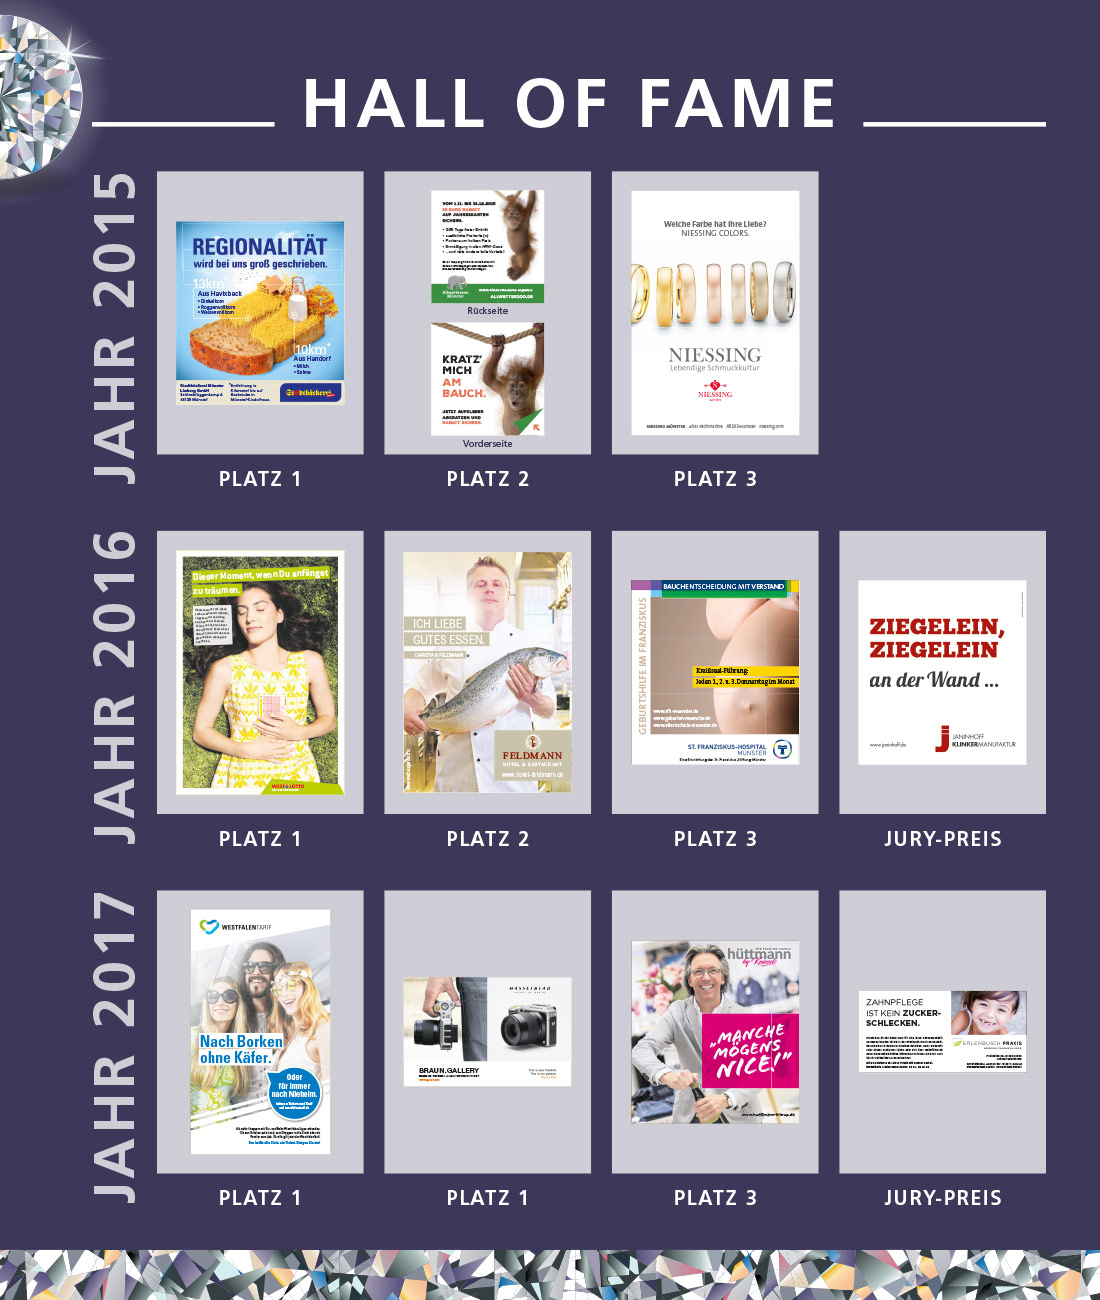 Hall of fame BrillANZ